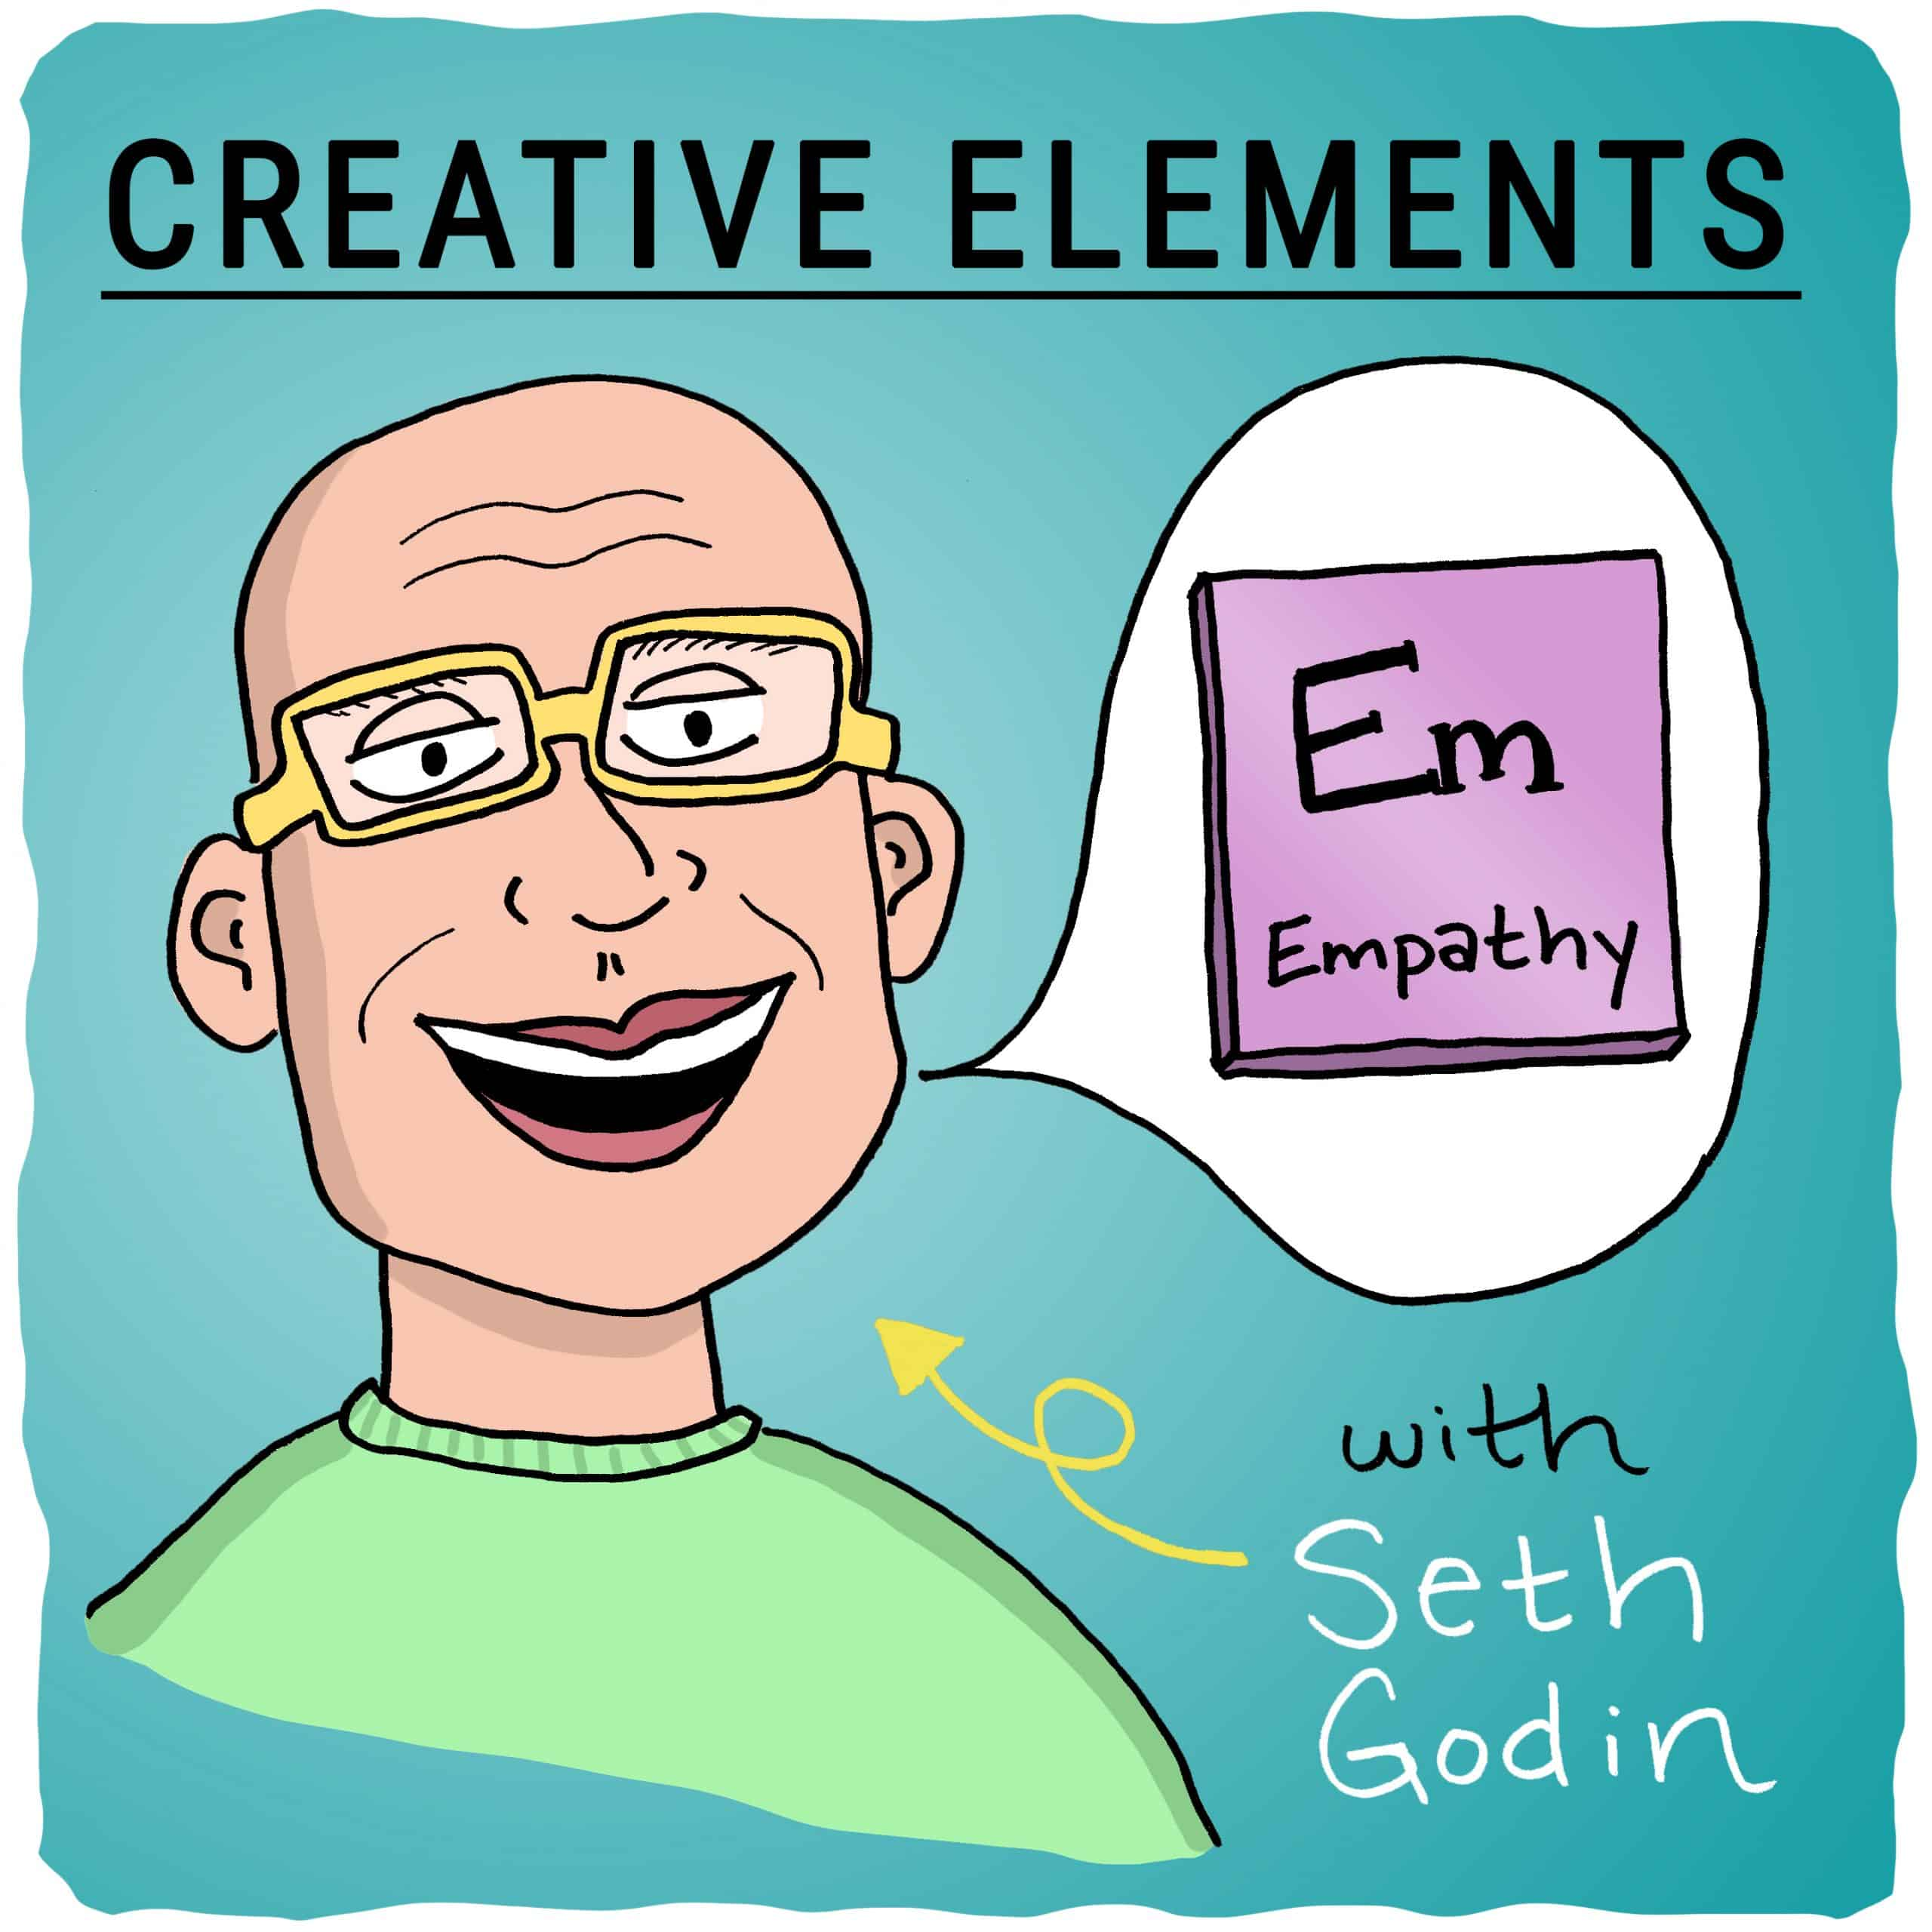 Seth Godin on Creative Elements